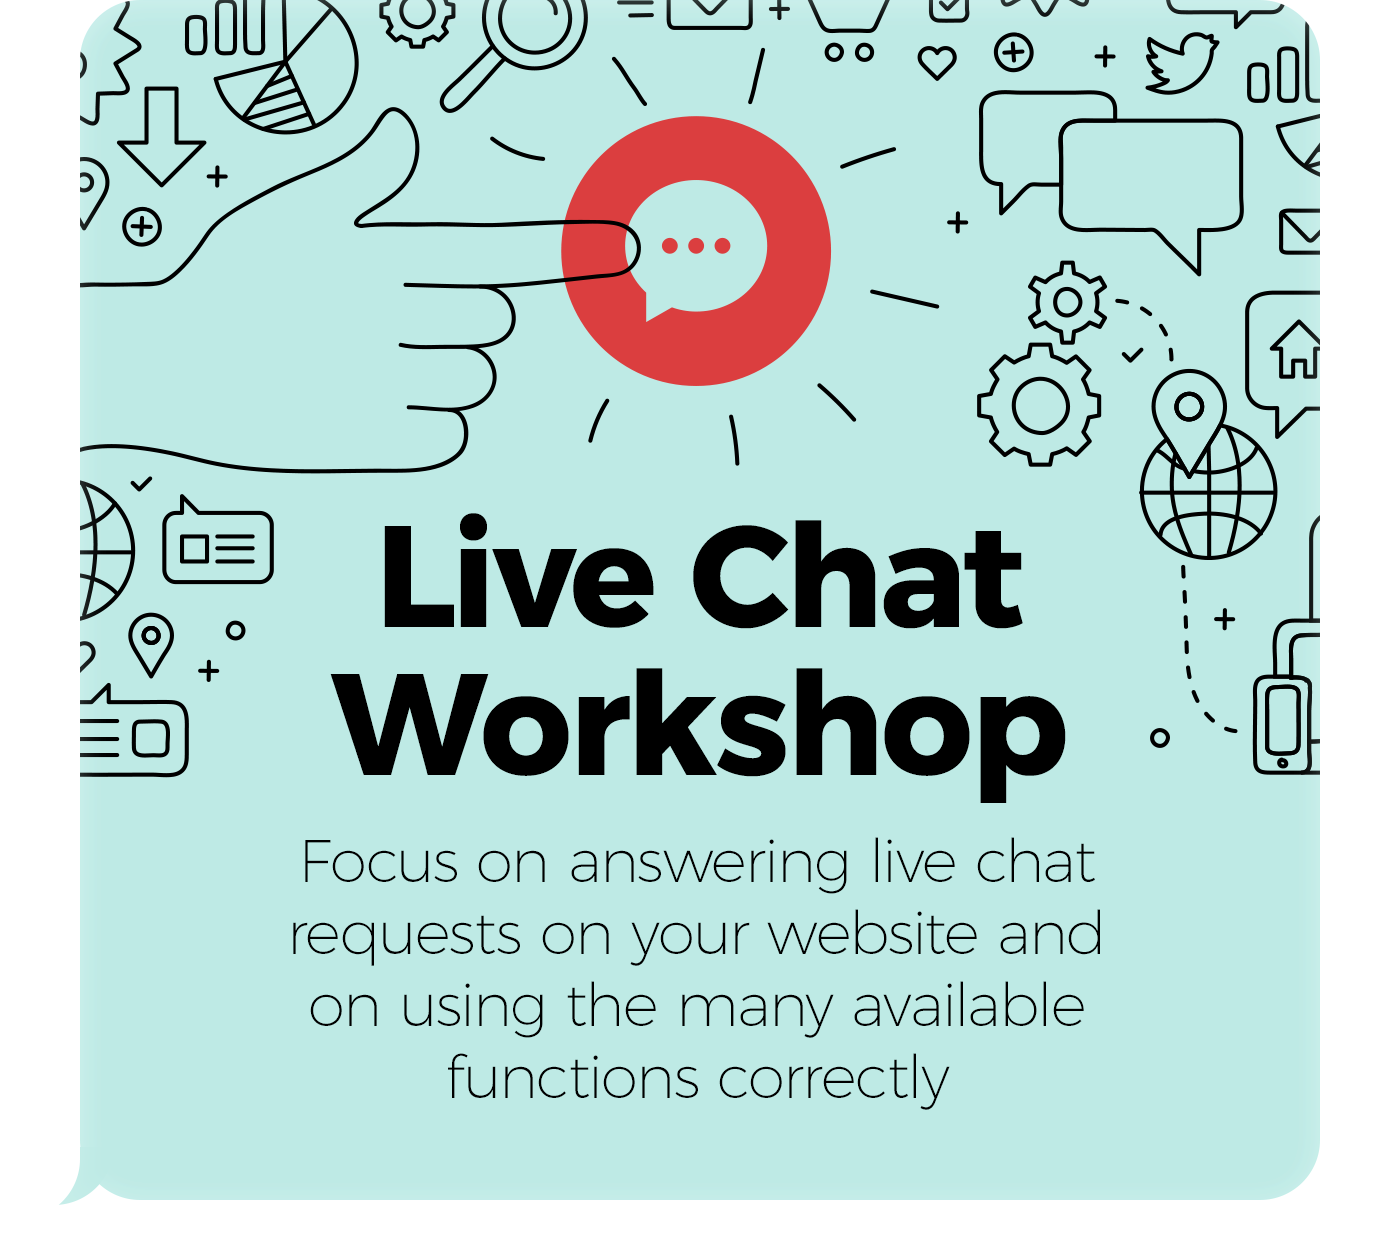 Live Chat Workshop